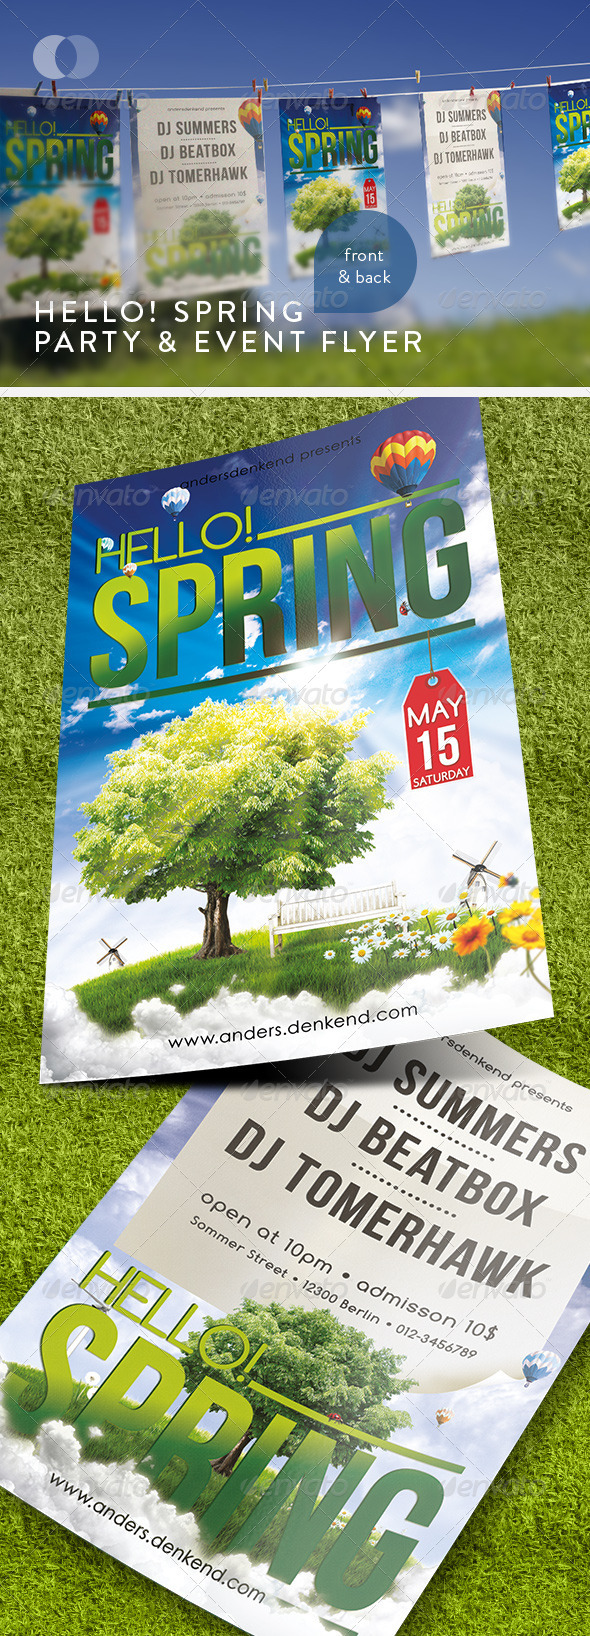 GraphicRiver Music & Event Flyer Hello Spring 232063